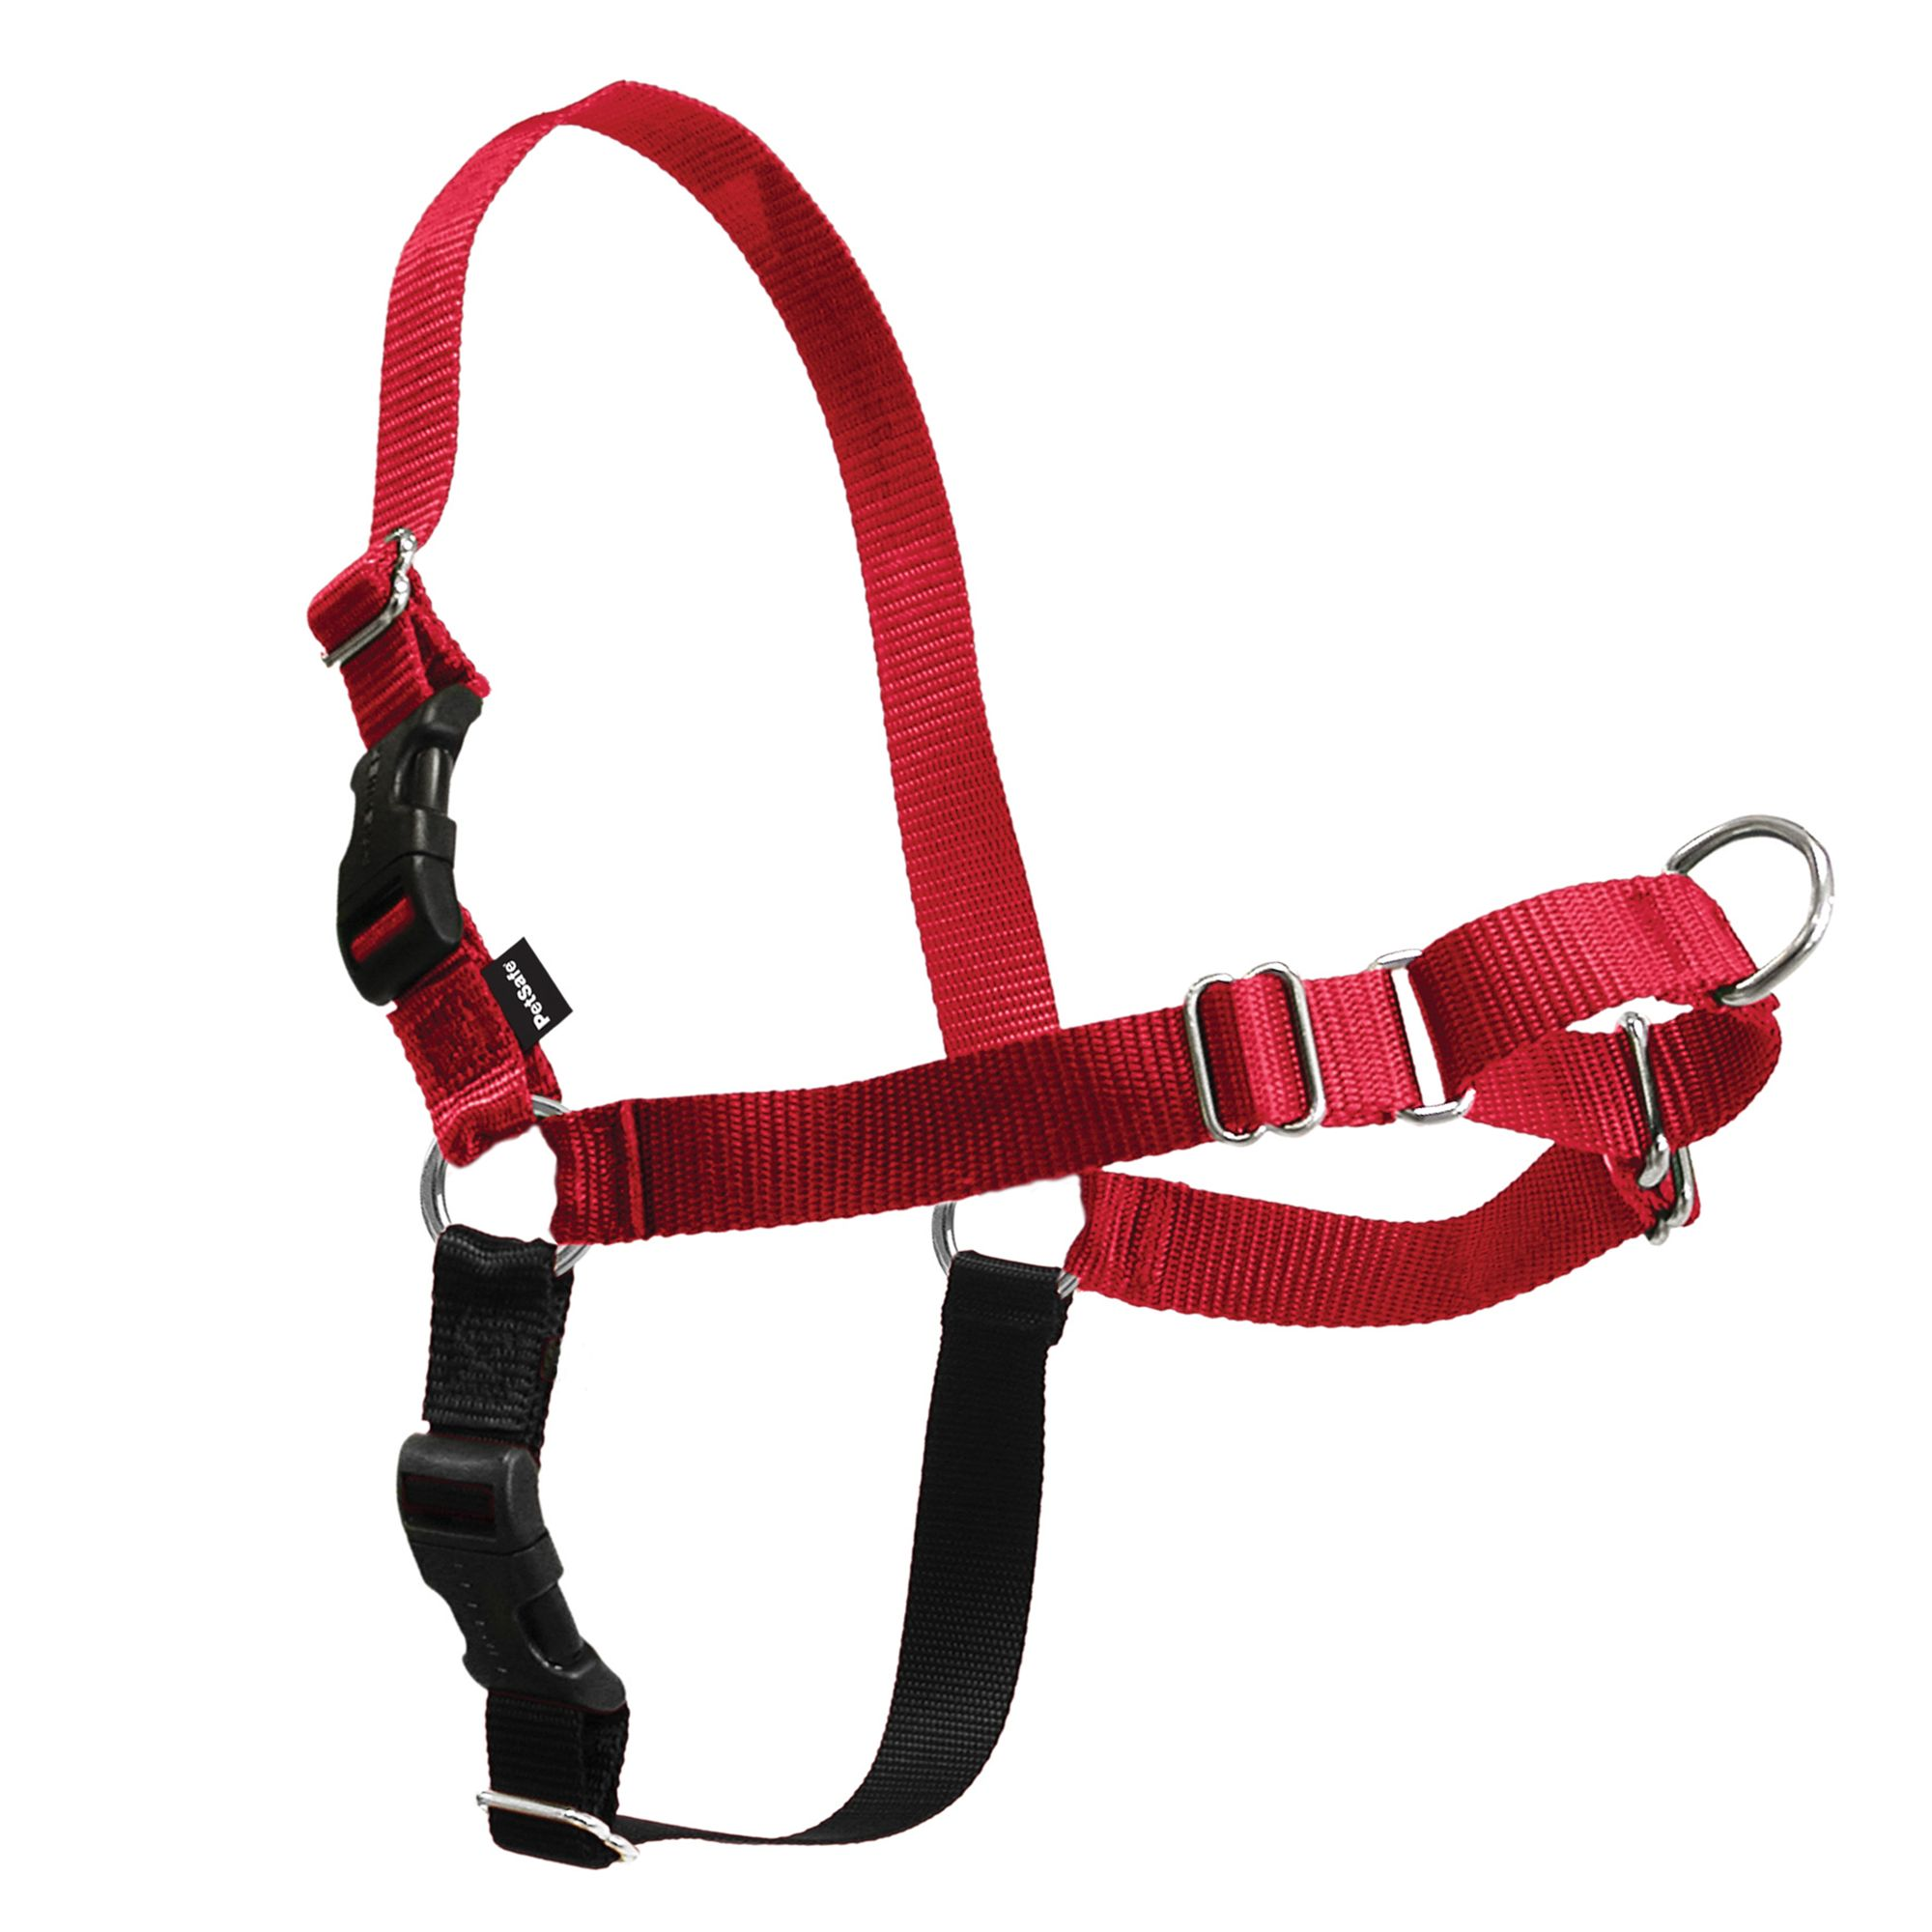 PetSafe Easy Walk Dog Harness size: Medium, Red